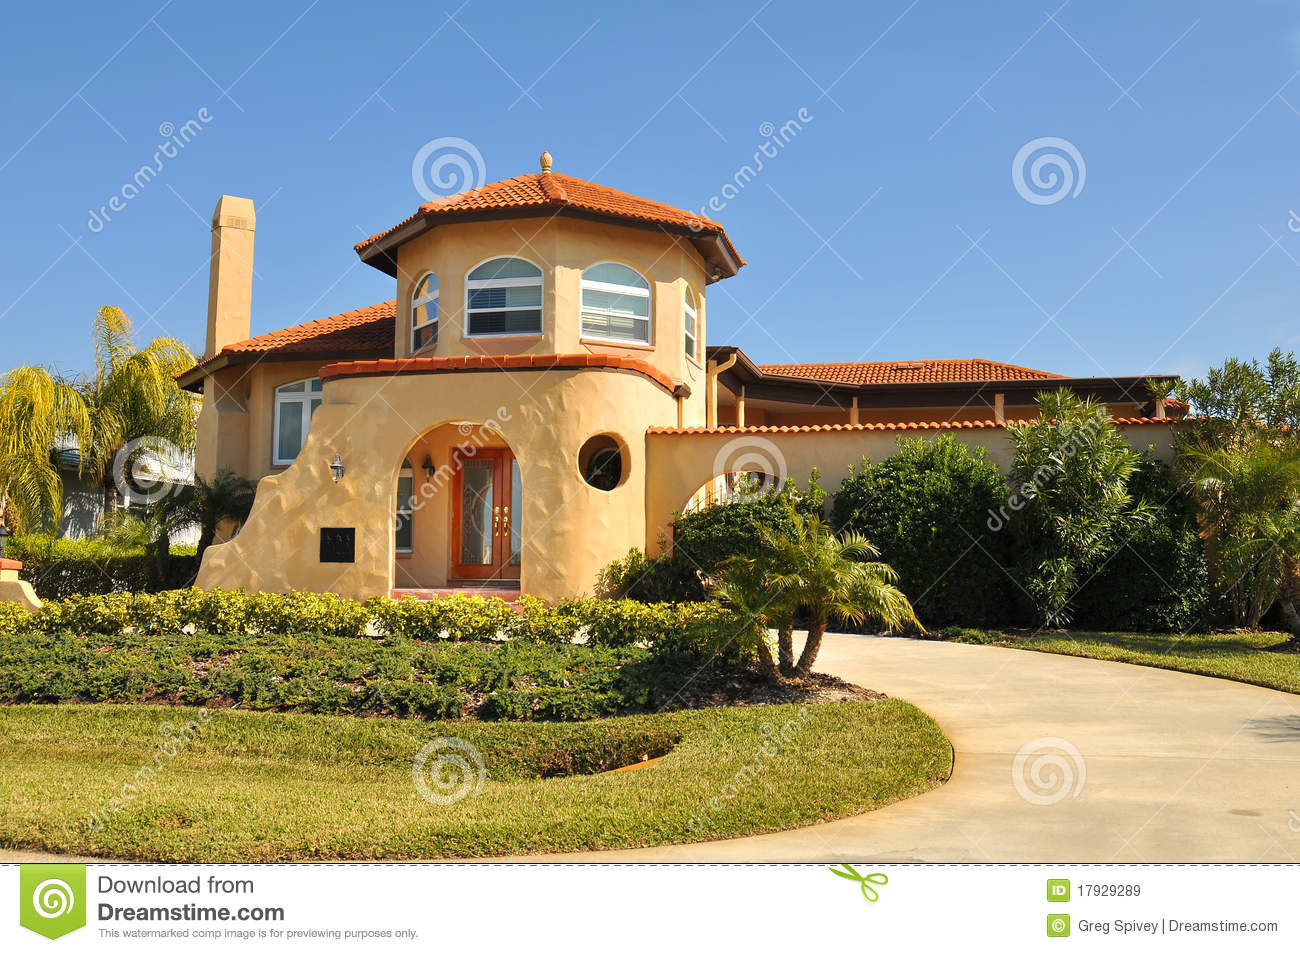 Maison Espagnole Stock Photos Royalty Free Images